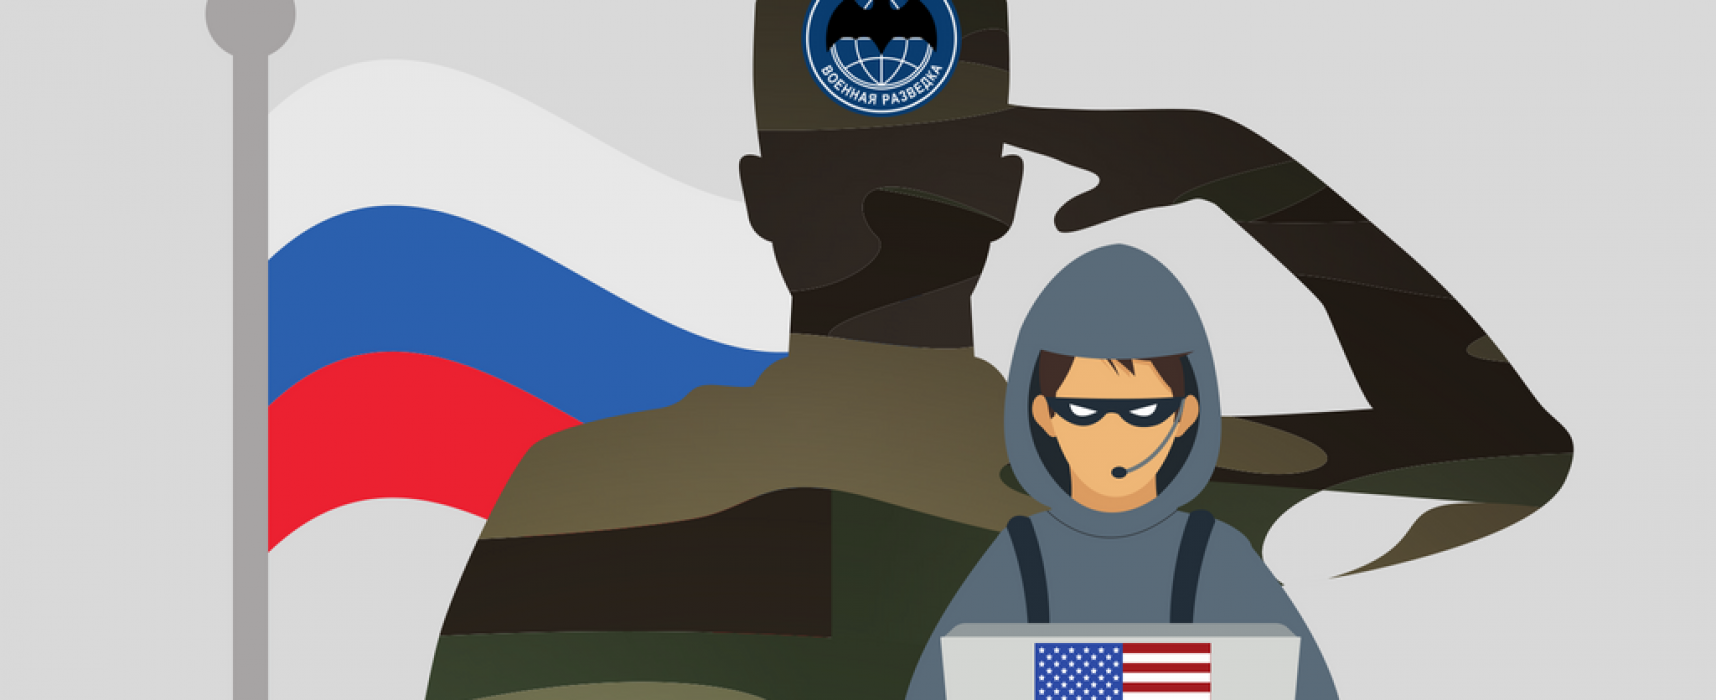 Military Intelligence, fake online personas, fake local news: How Russia targeted US elections